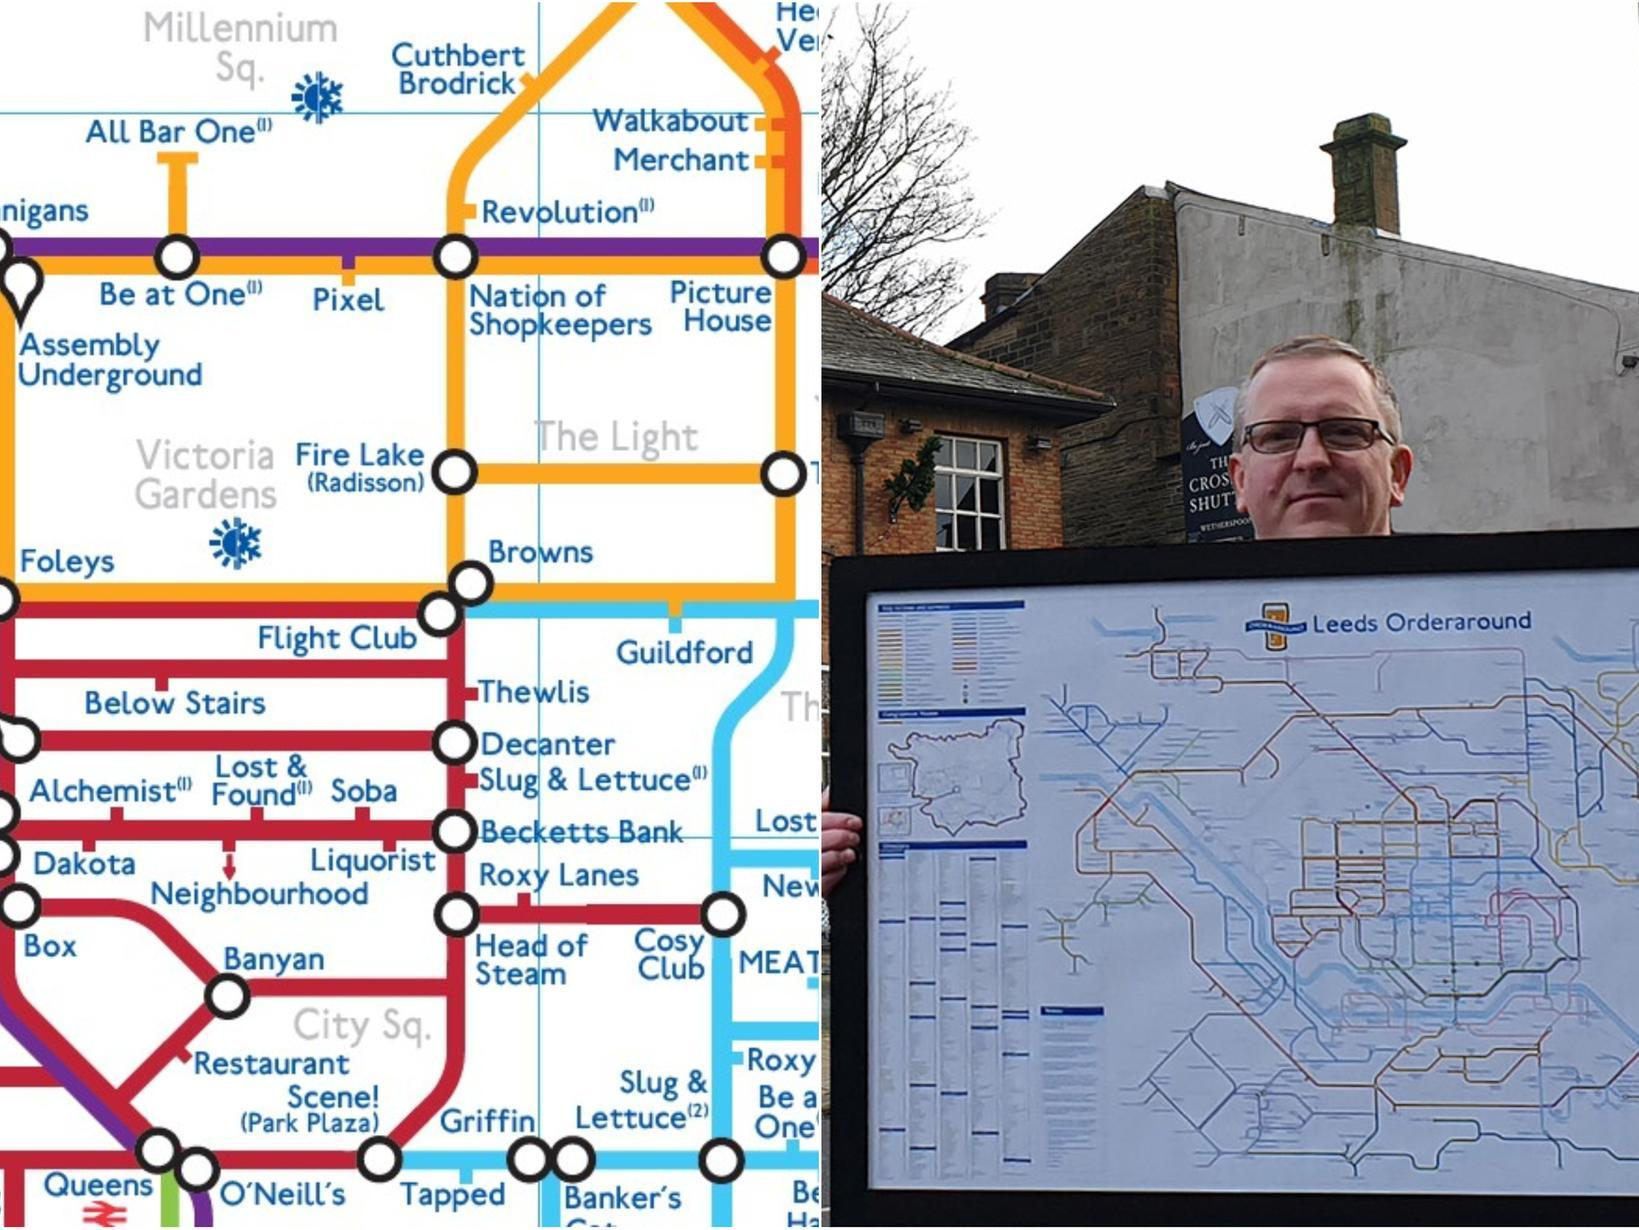 Check out this incredible map of over 600 Leeds pubs in the style of the London Underground diagram